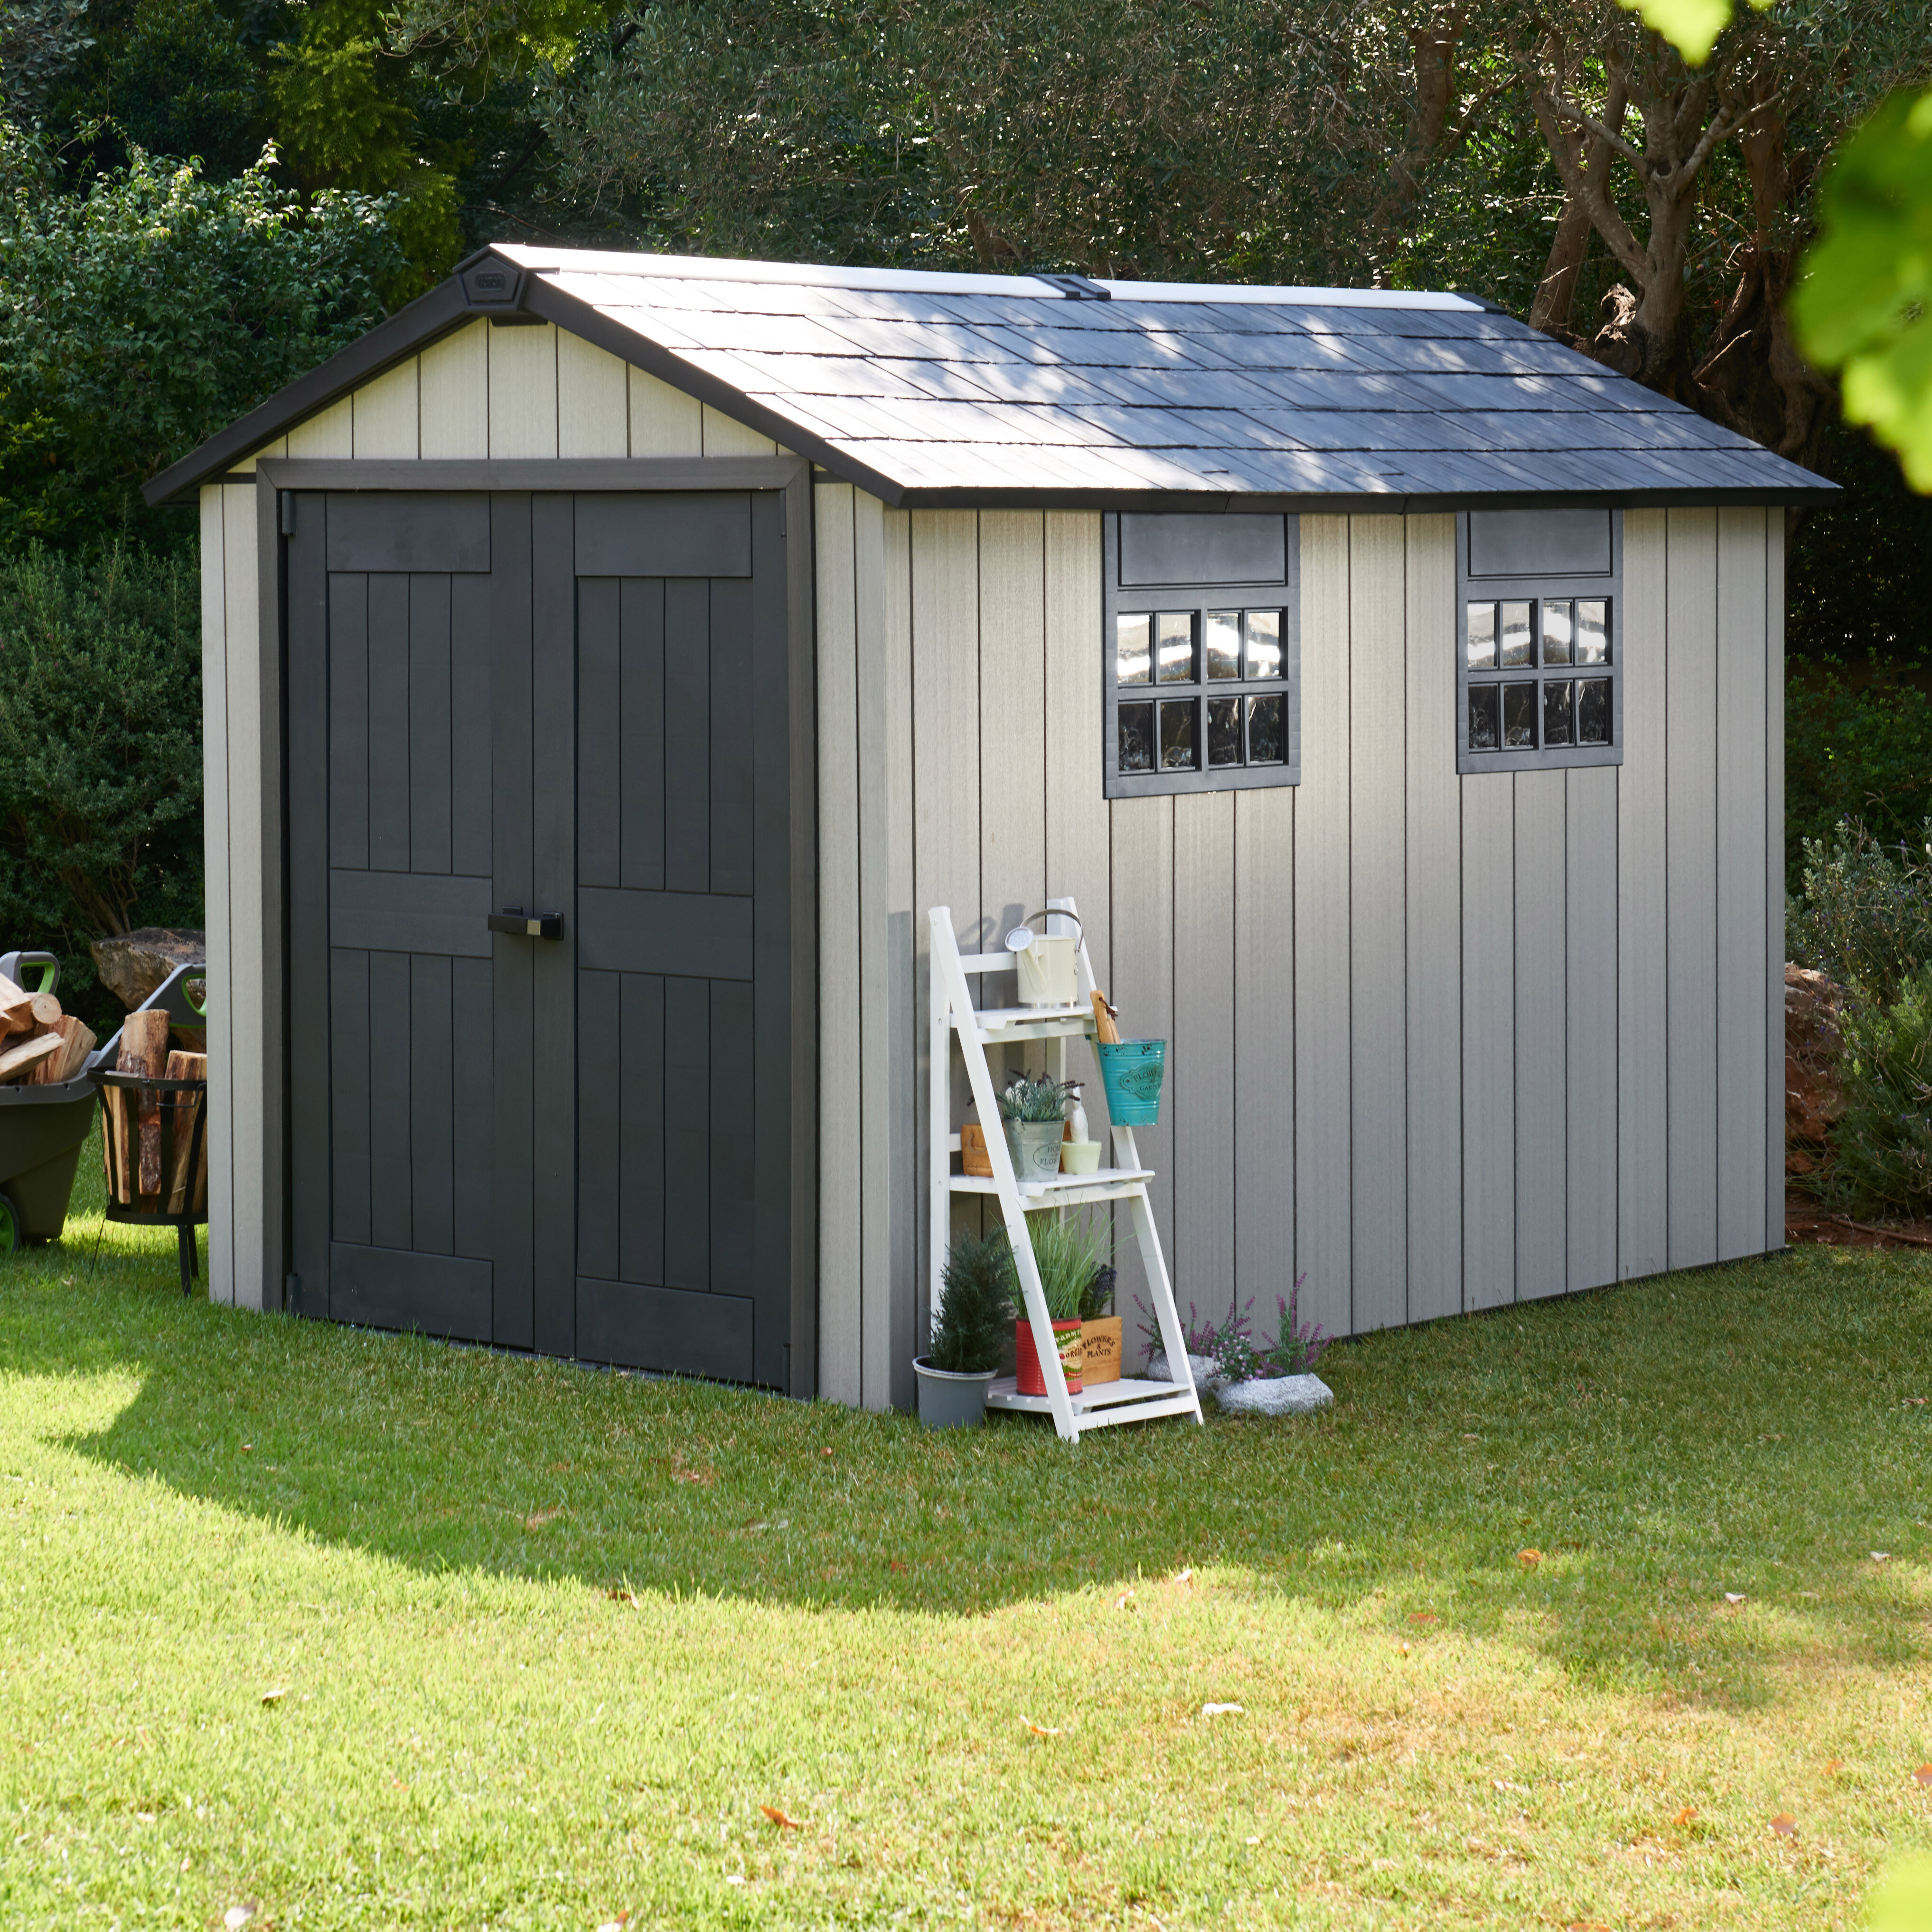 2be7fe3caa0f Keter Oakland 11.5 ft. W x 7.9 ft. D Plastic Storage Shed & Reviews ...